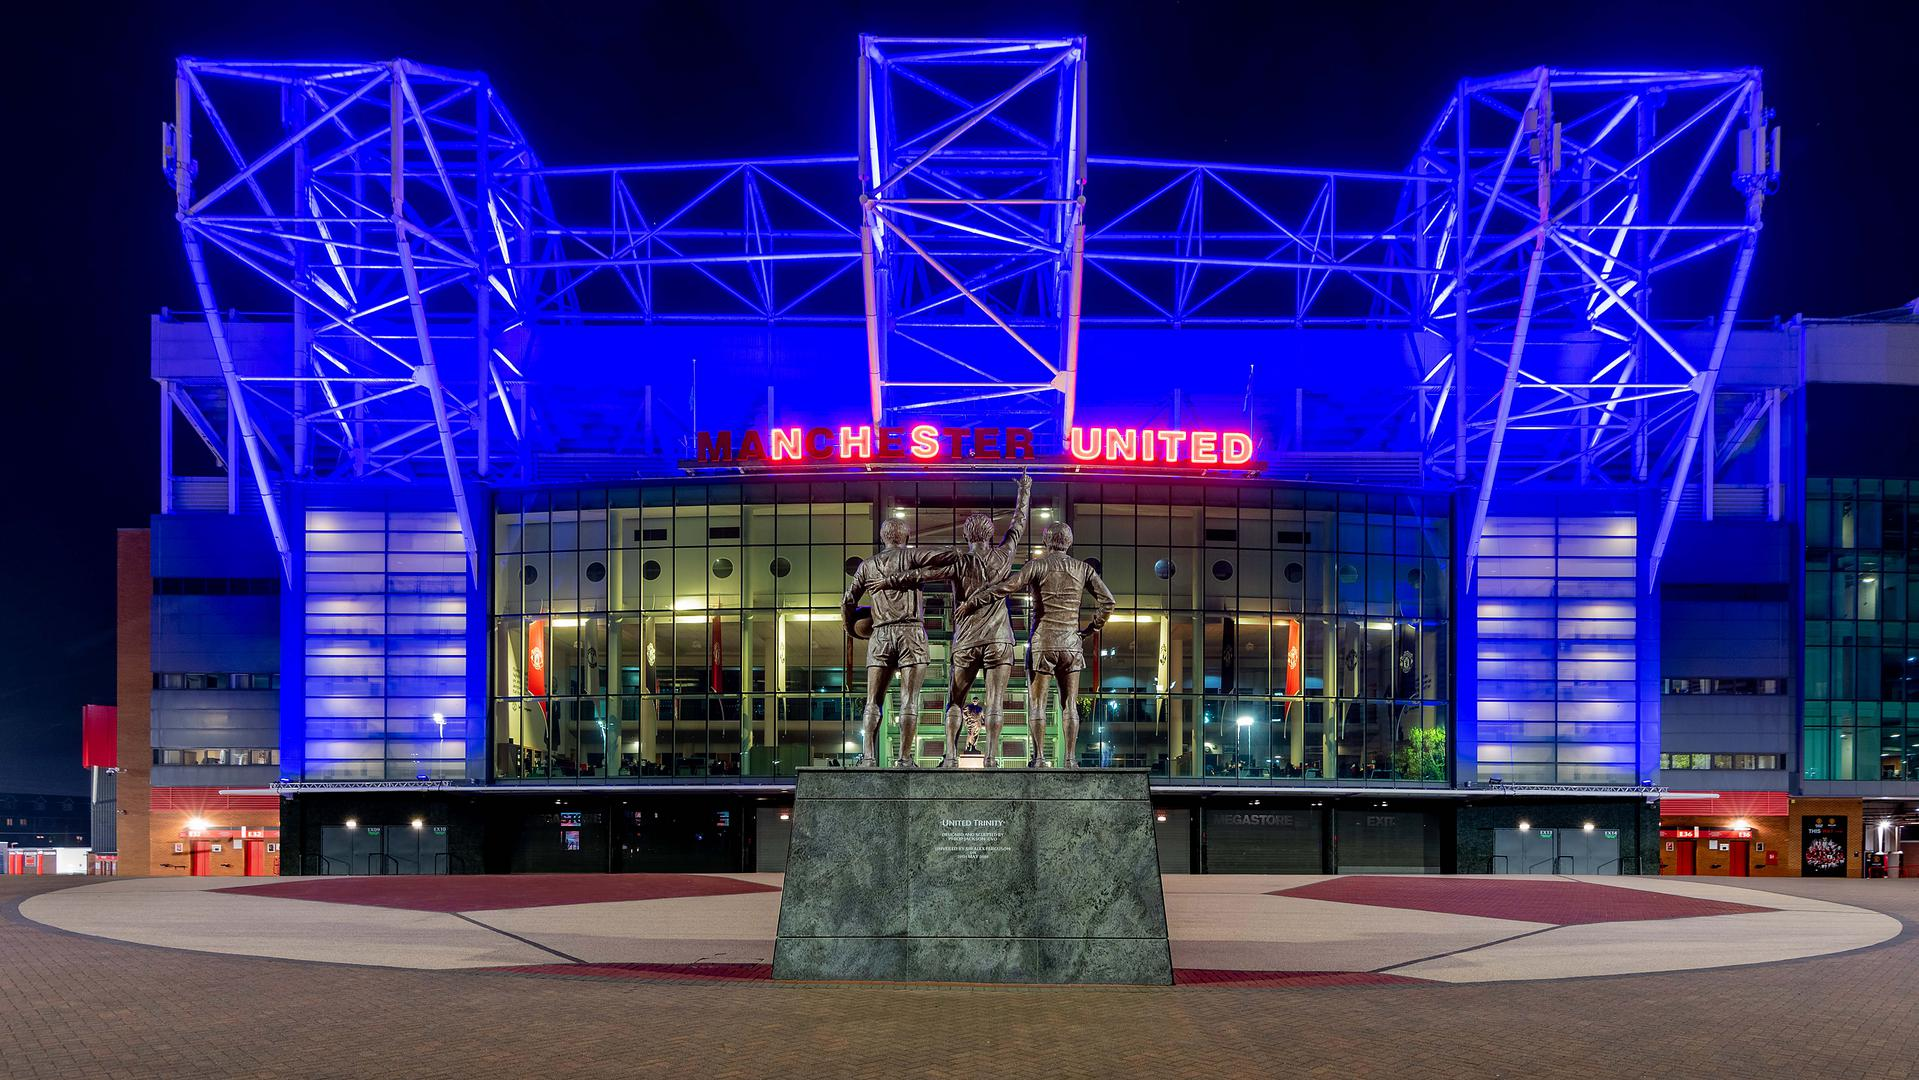 Old Trafford lit up in blue with the neon sign spelling out NHS United.